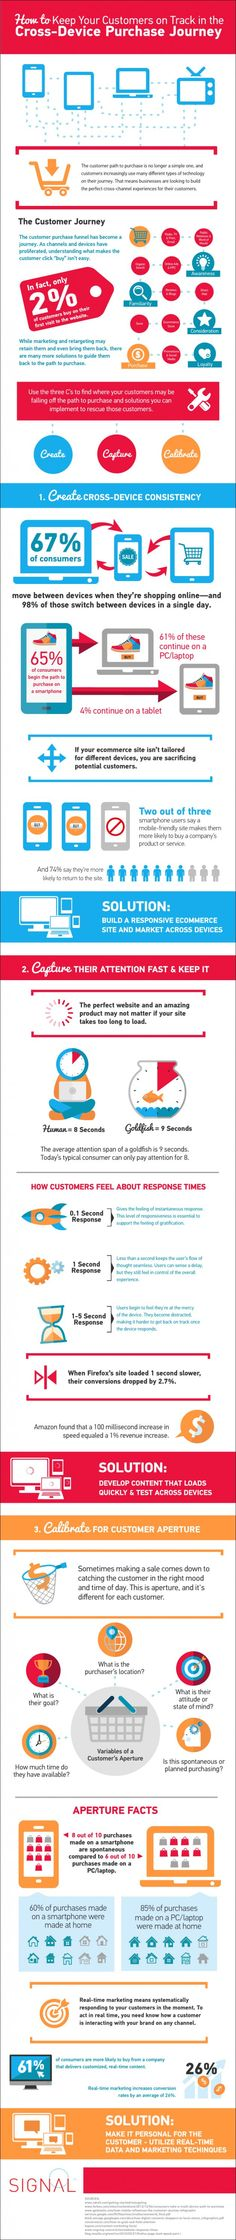 How to Keep an Online Shopper on the Hook INFOGRAPHIC